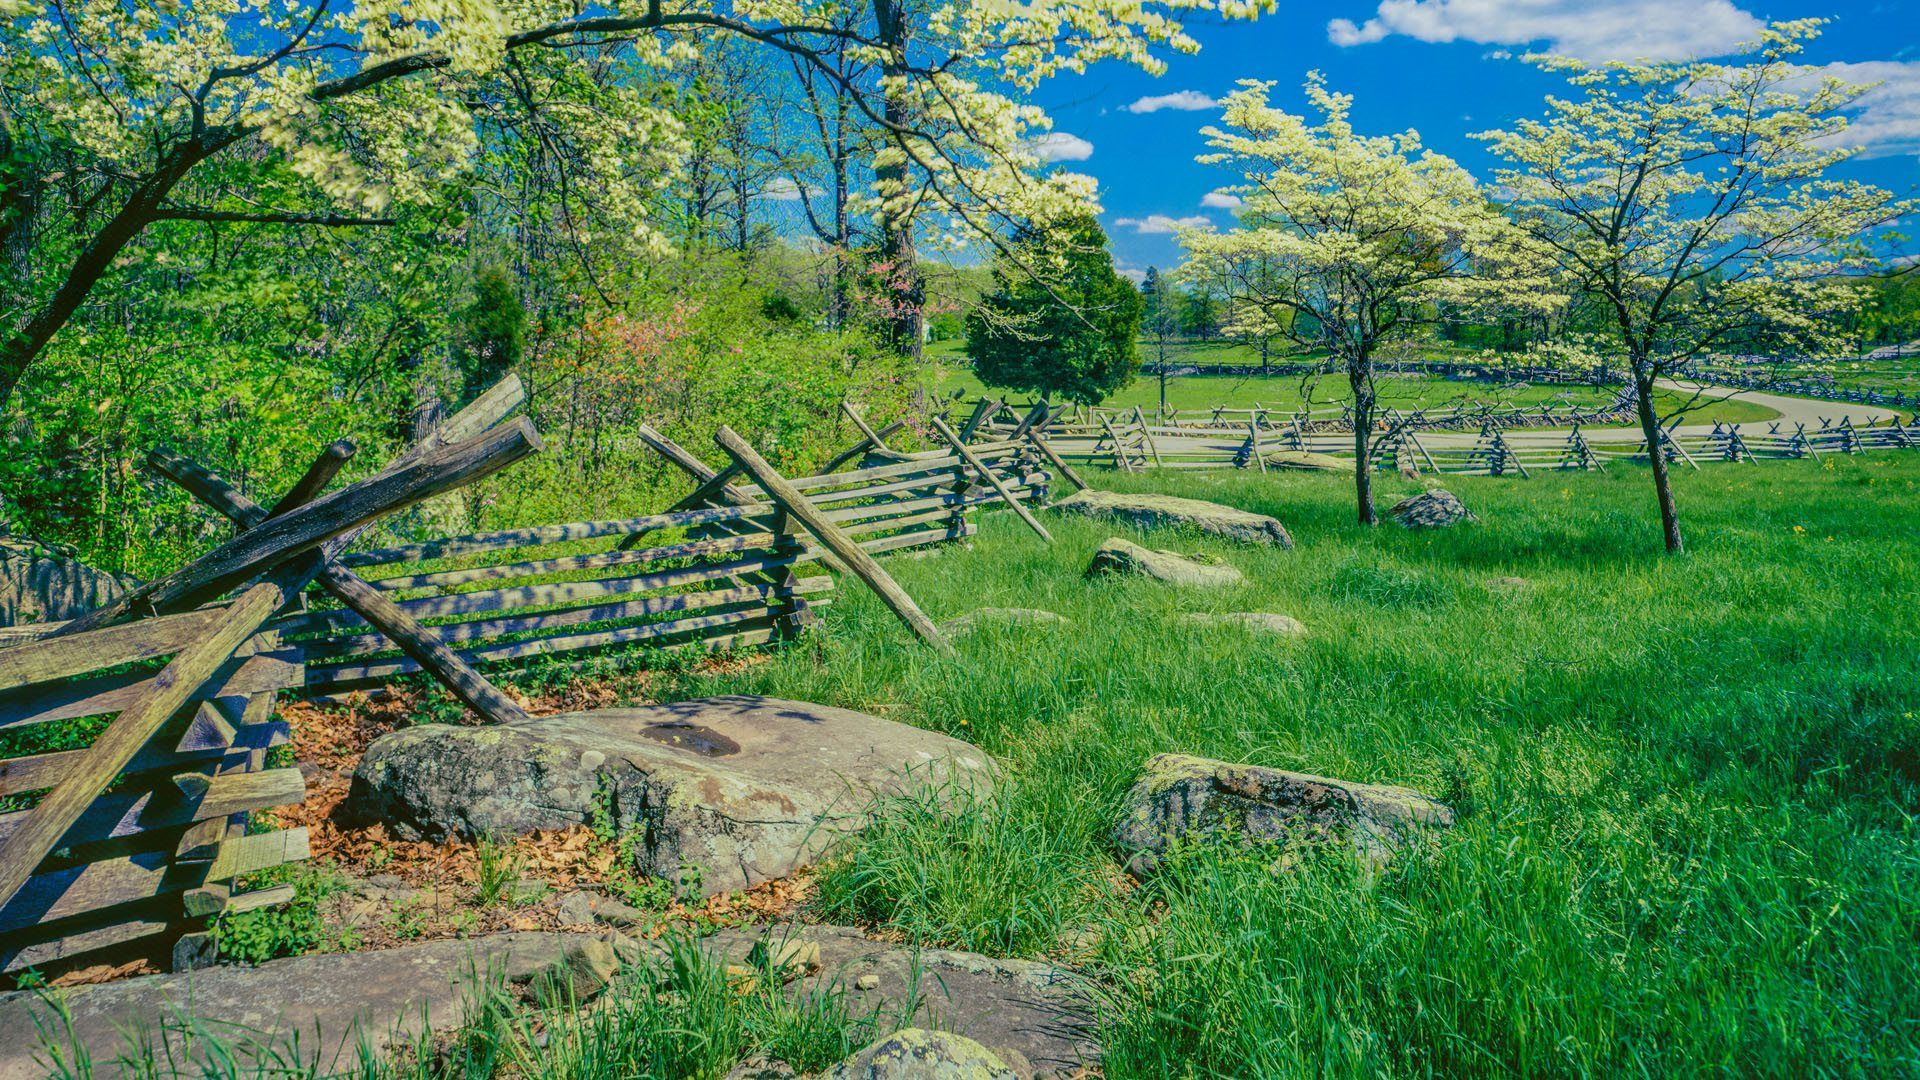 Nearby | Gettysburg National Military Park